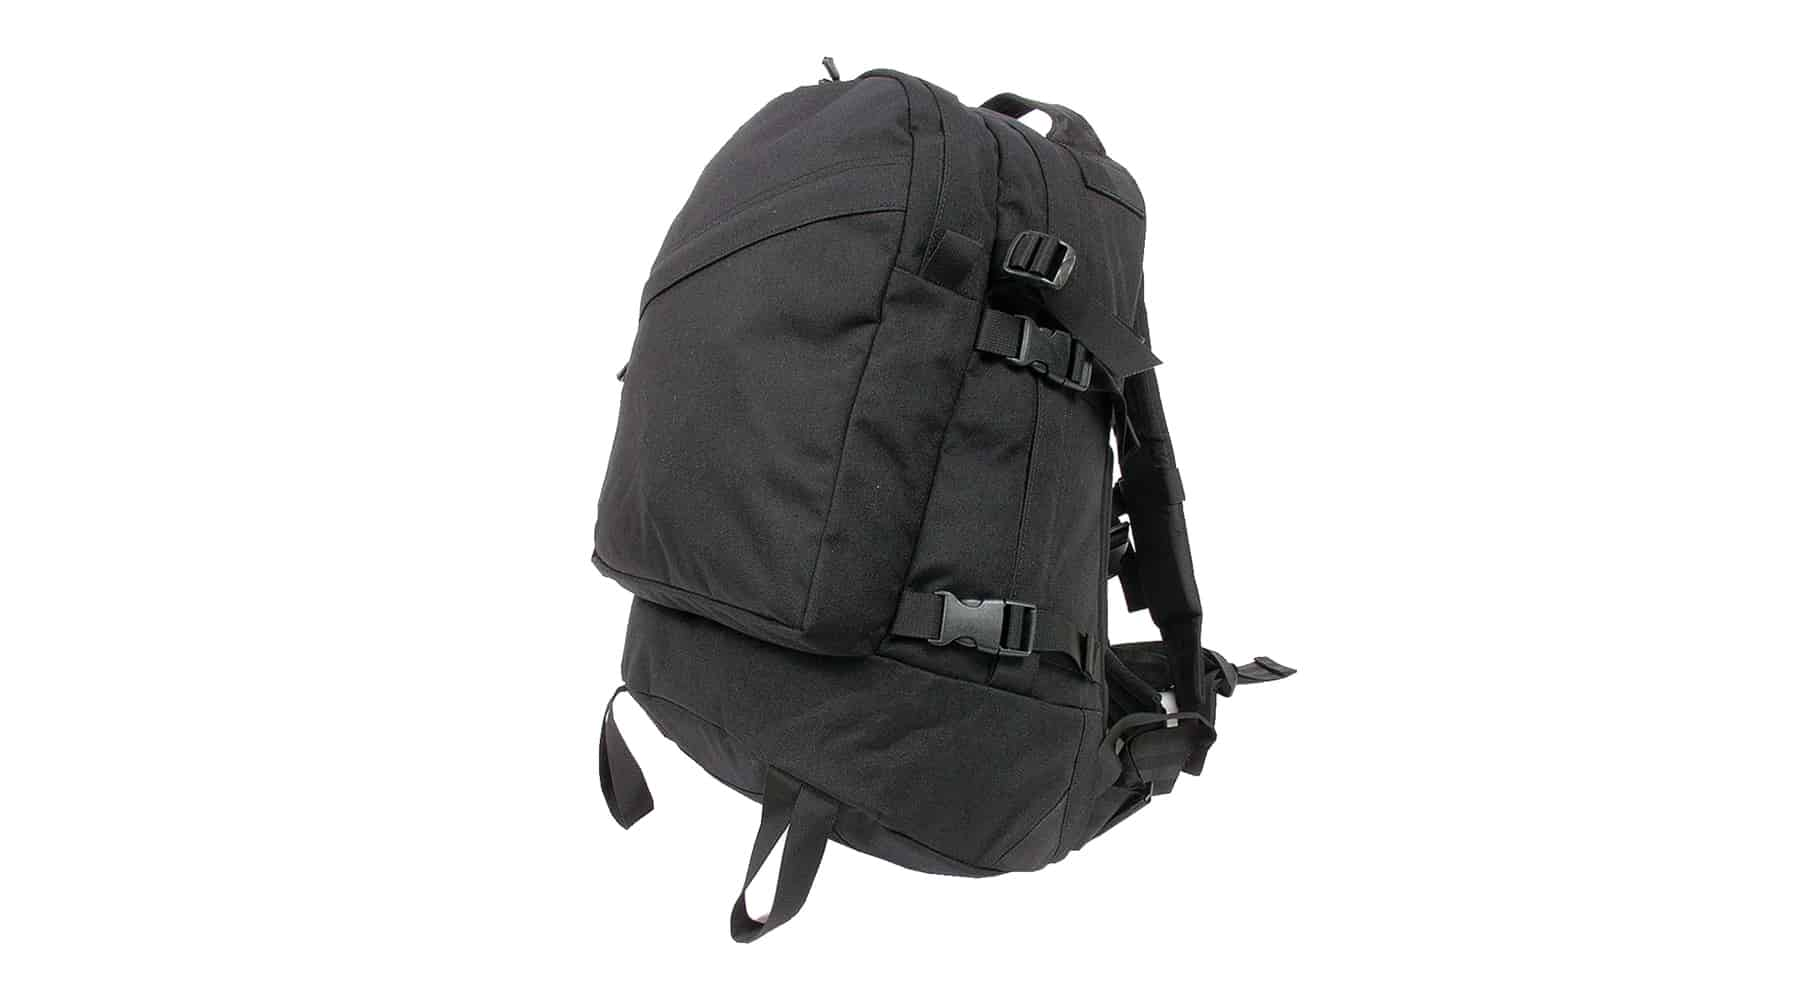 Blackhawk Tactical Backpack - 3 Day Assault Pack